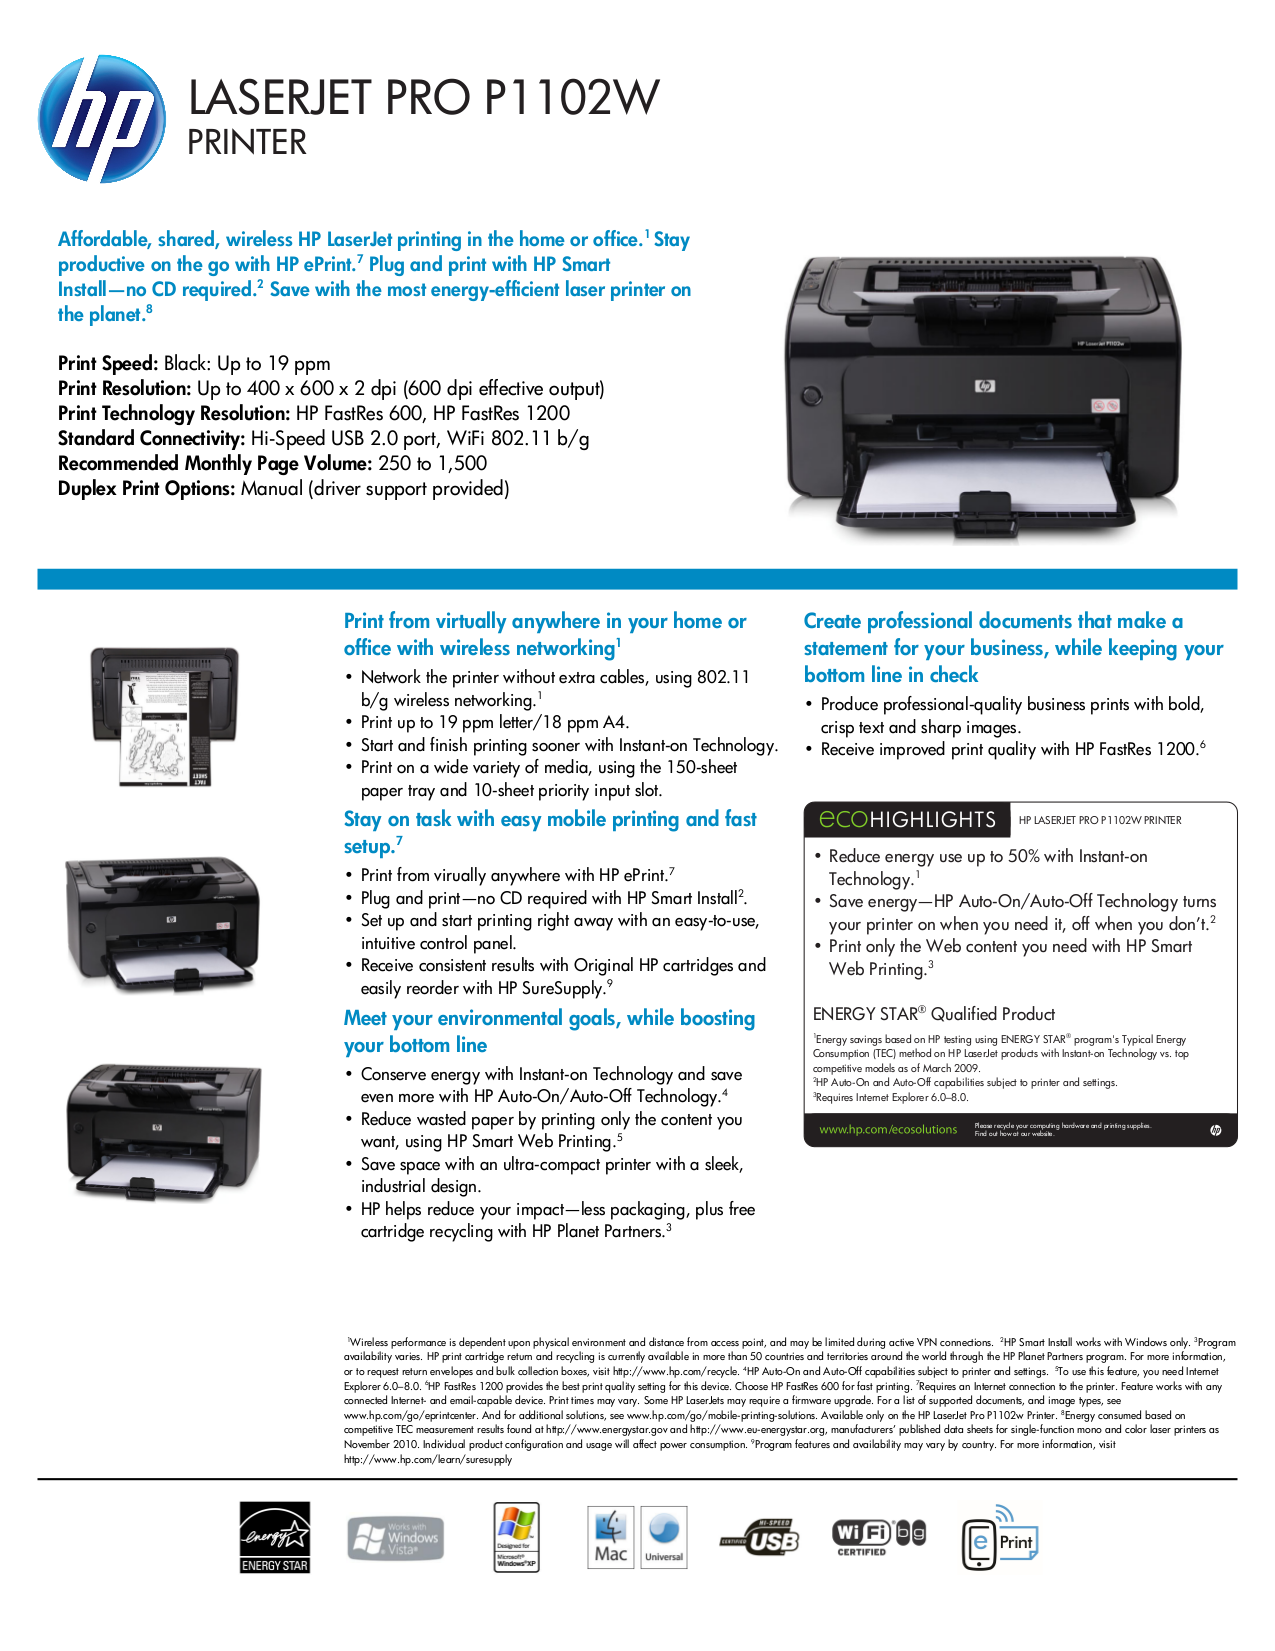 Download Free Pdf For HP LaserjetColor Laserjet Pro P1102